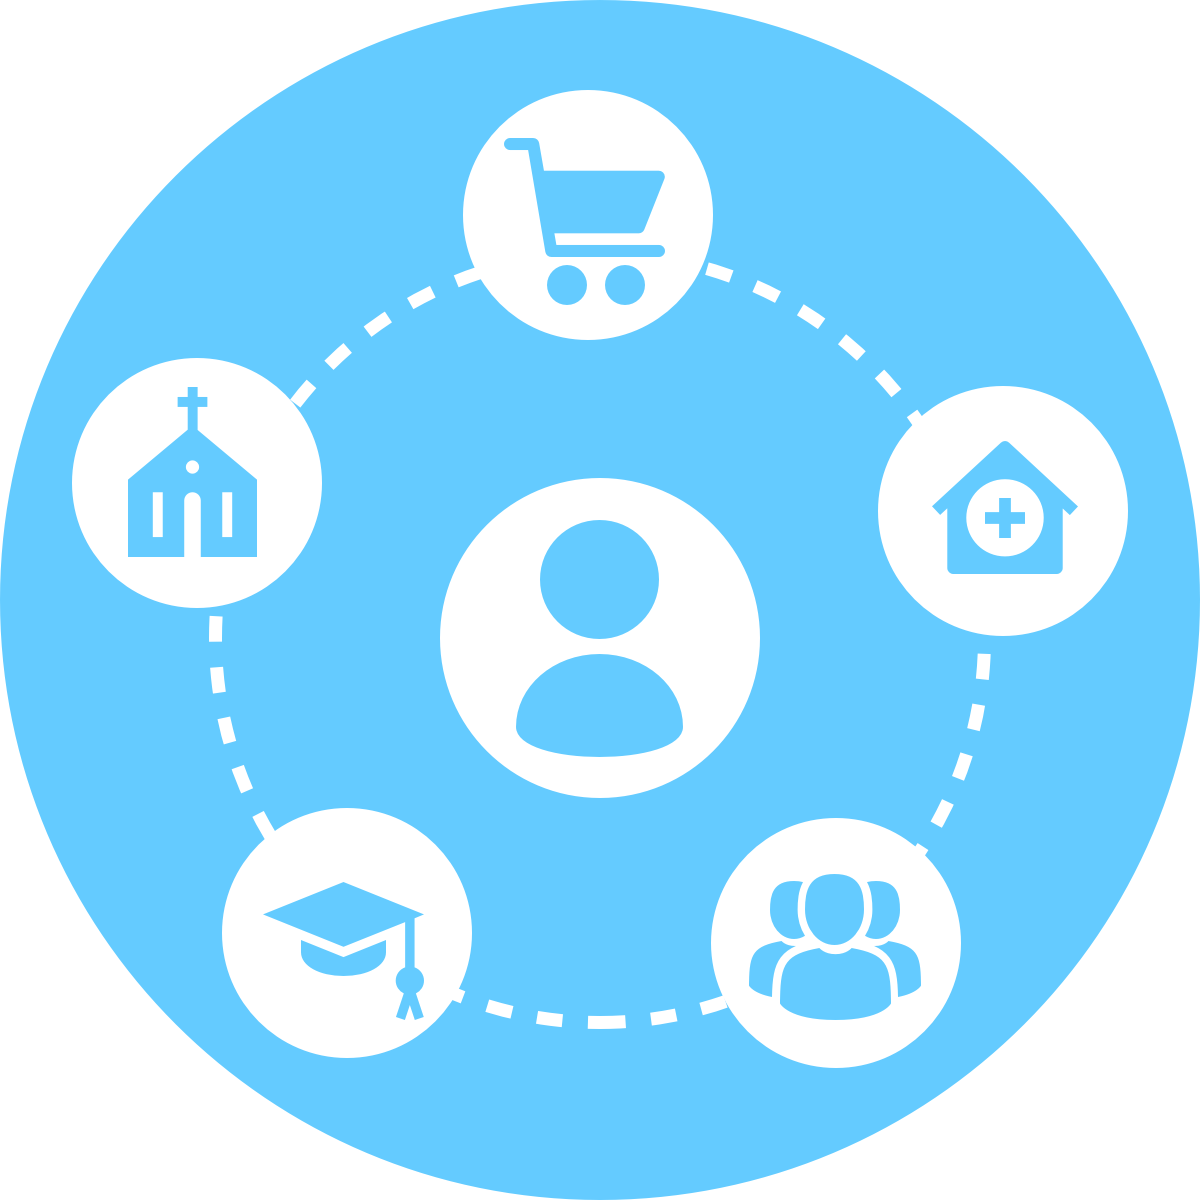 A person is surrounded with multiple icons, which includes grocery, groups, educations, church, and hospital